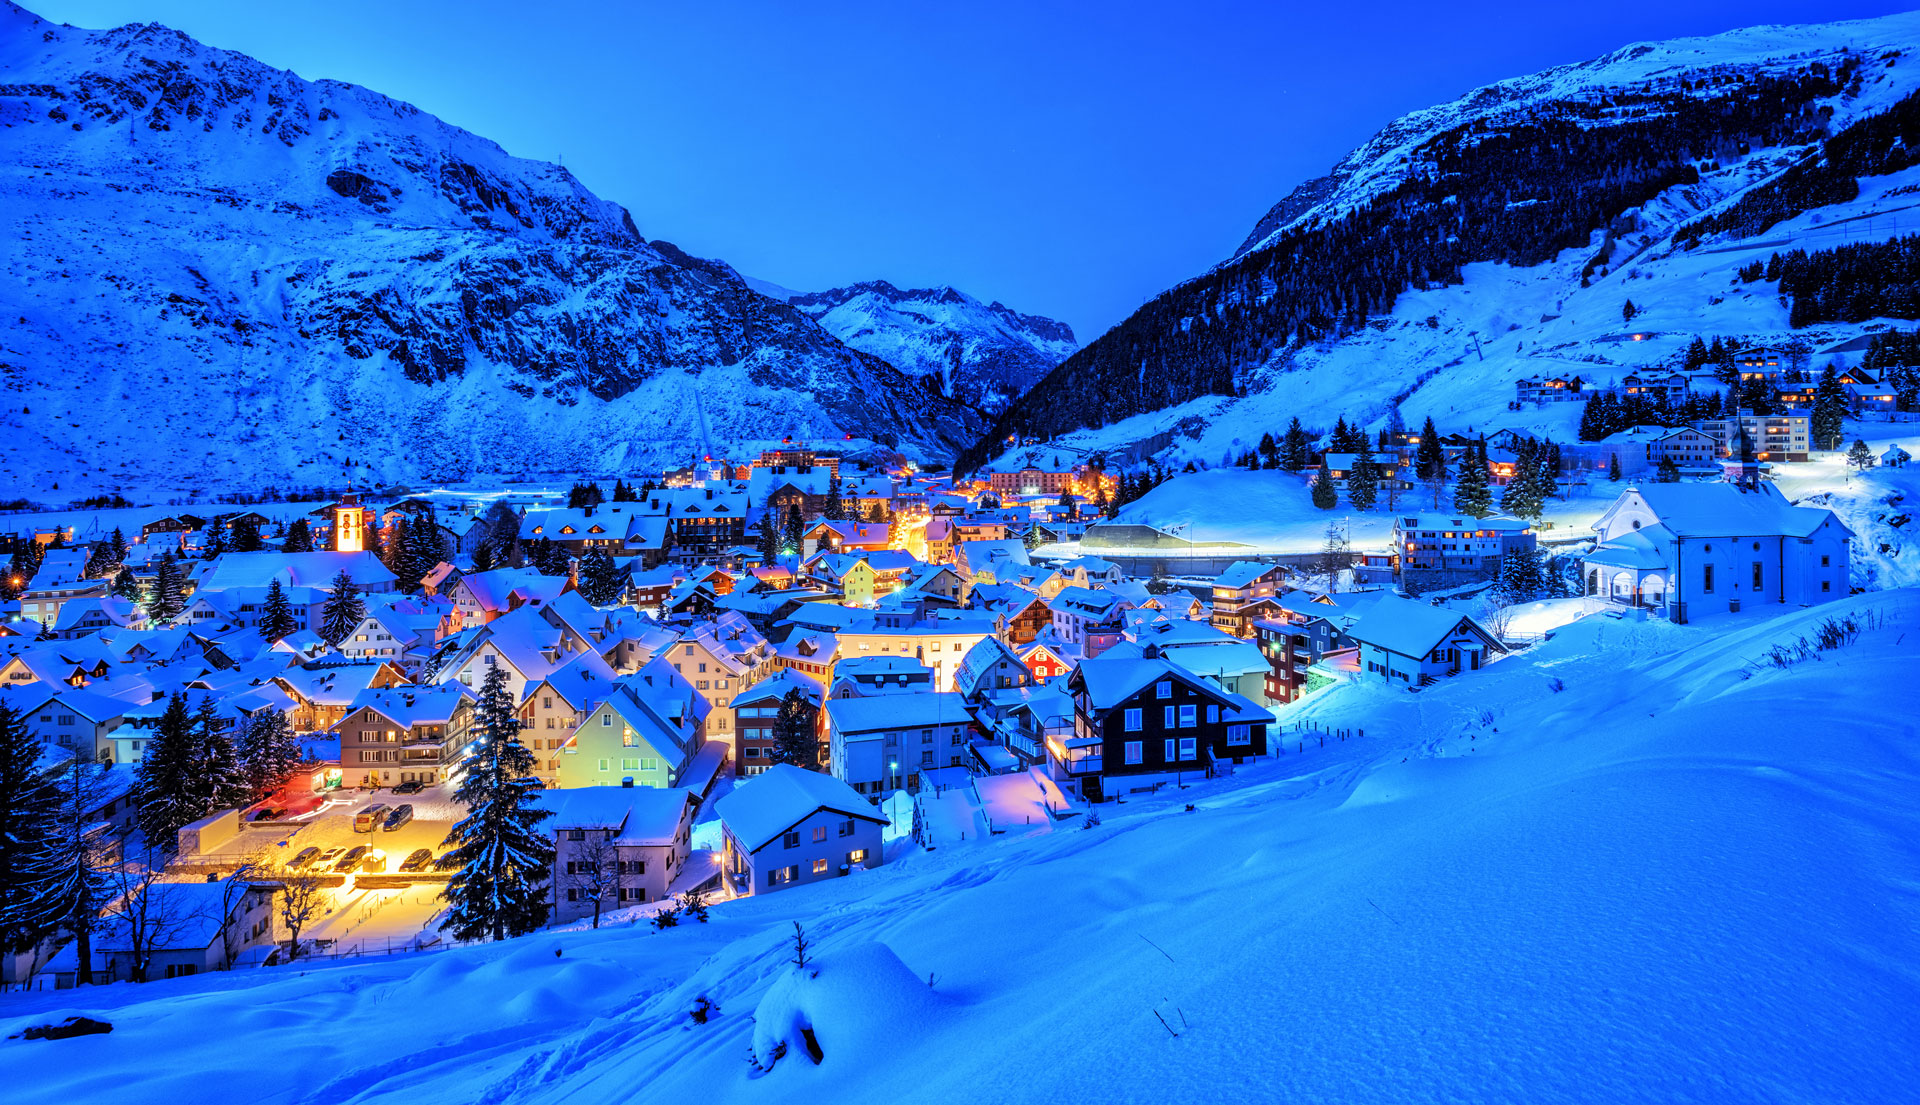 Snowy-Andermatt-Switzerland.jpg